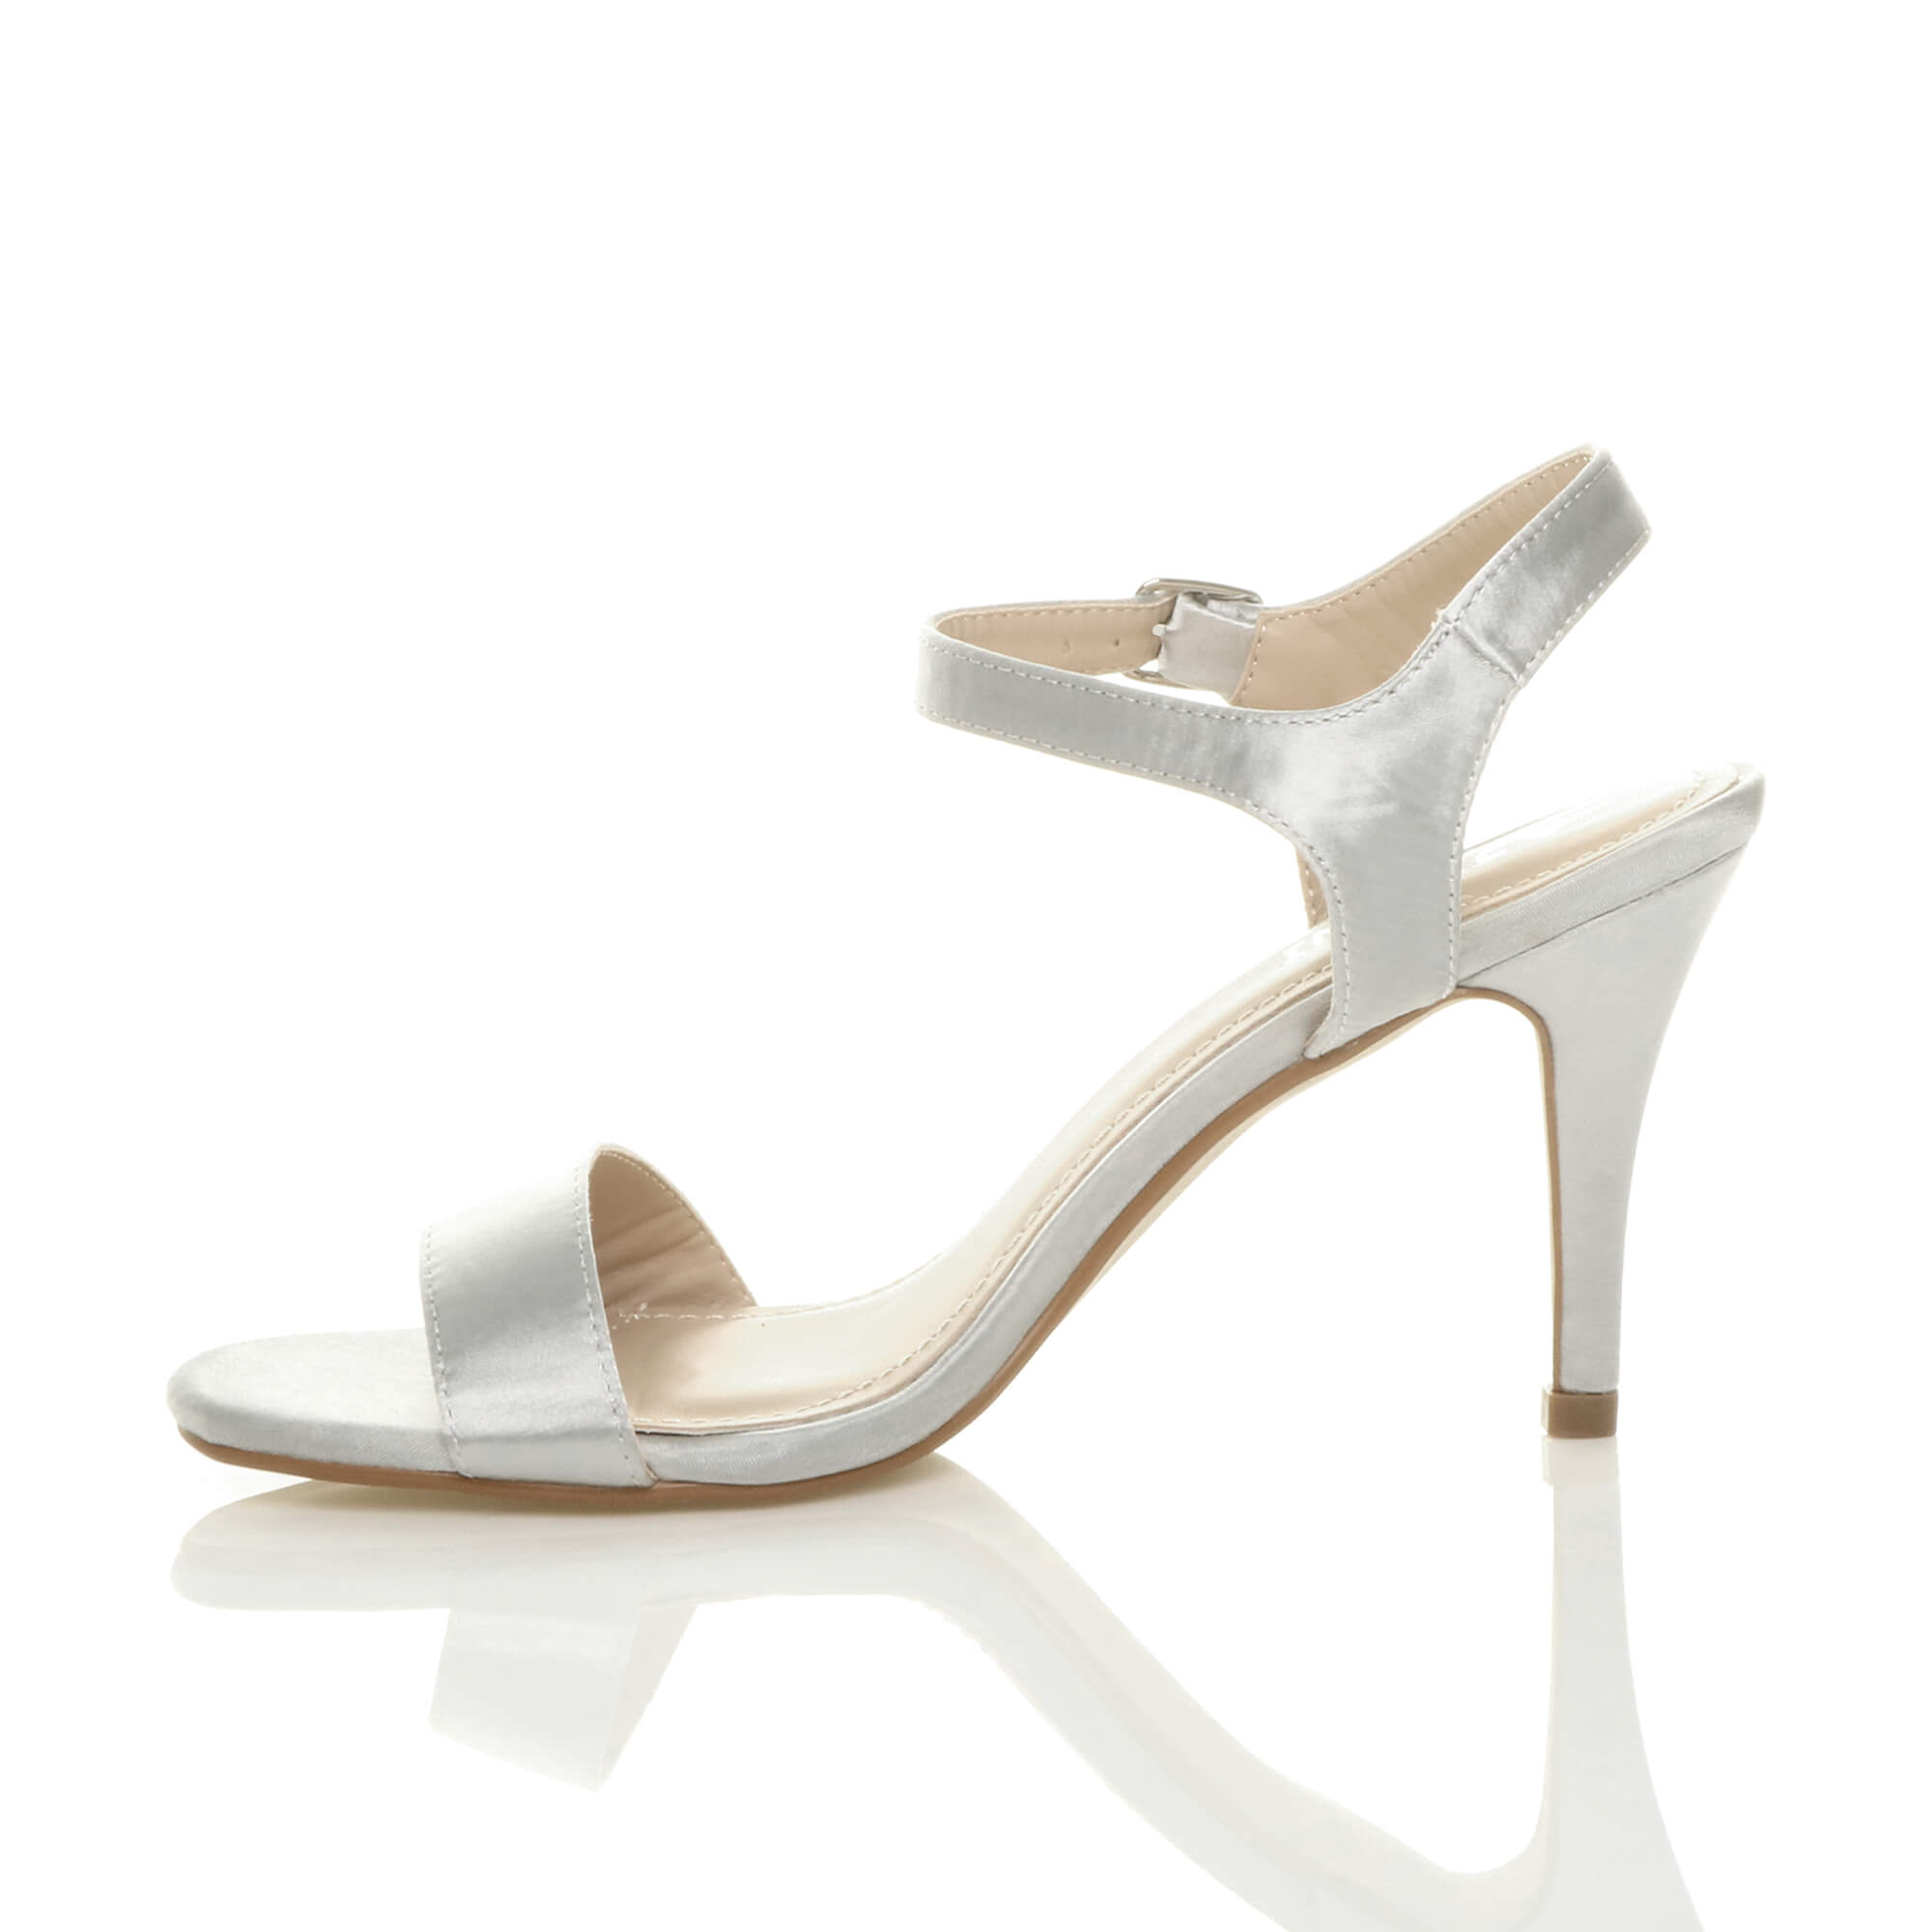 WOMENS-LADIES-HIGH-HEEL-BUCKLE-STRAPPY-BASIC-BARELY-THERE-SANDALS-SHOES-SIZE thumbnail 137